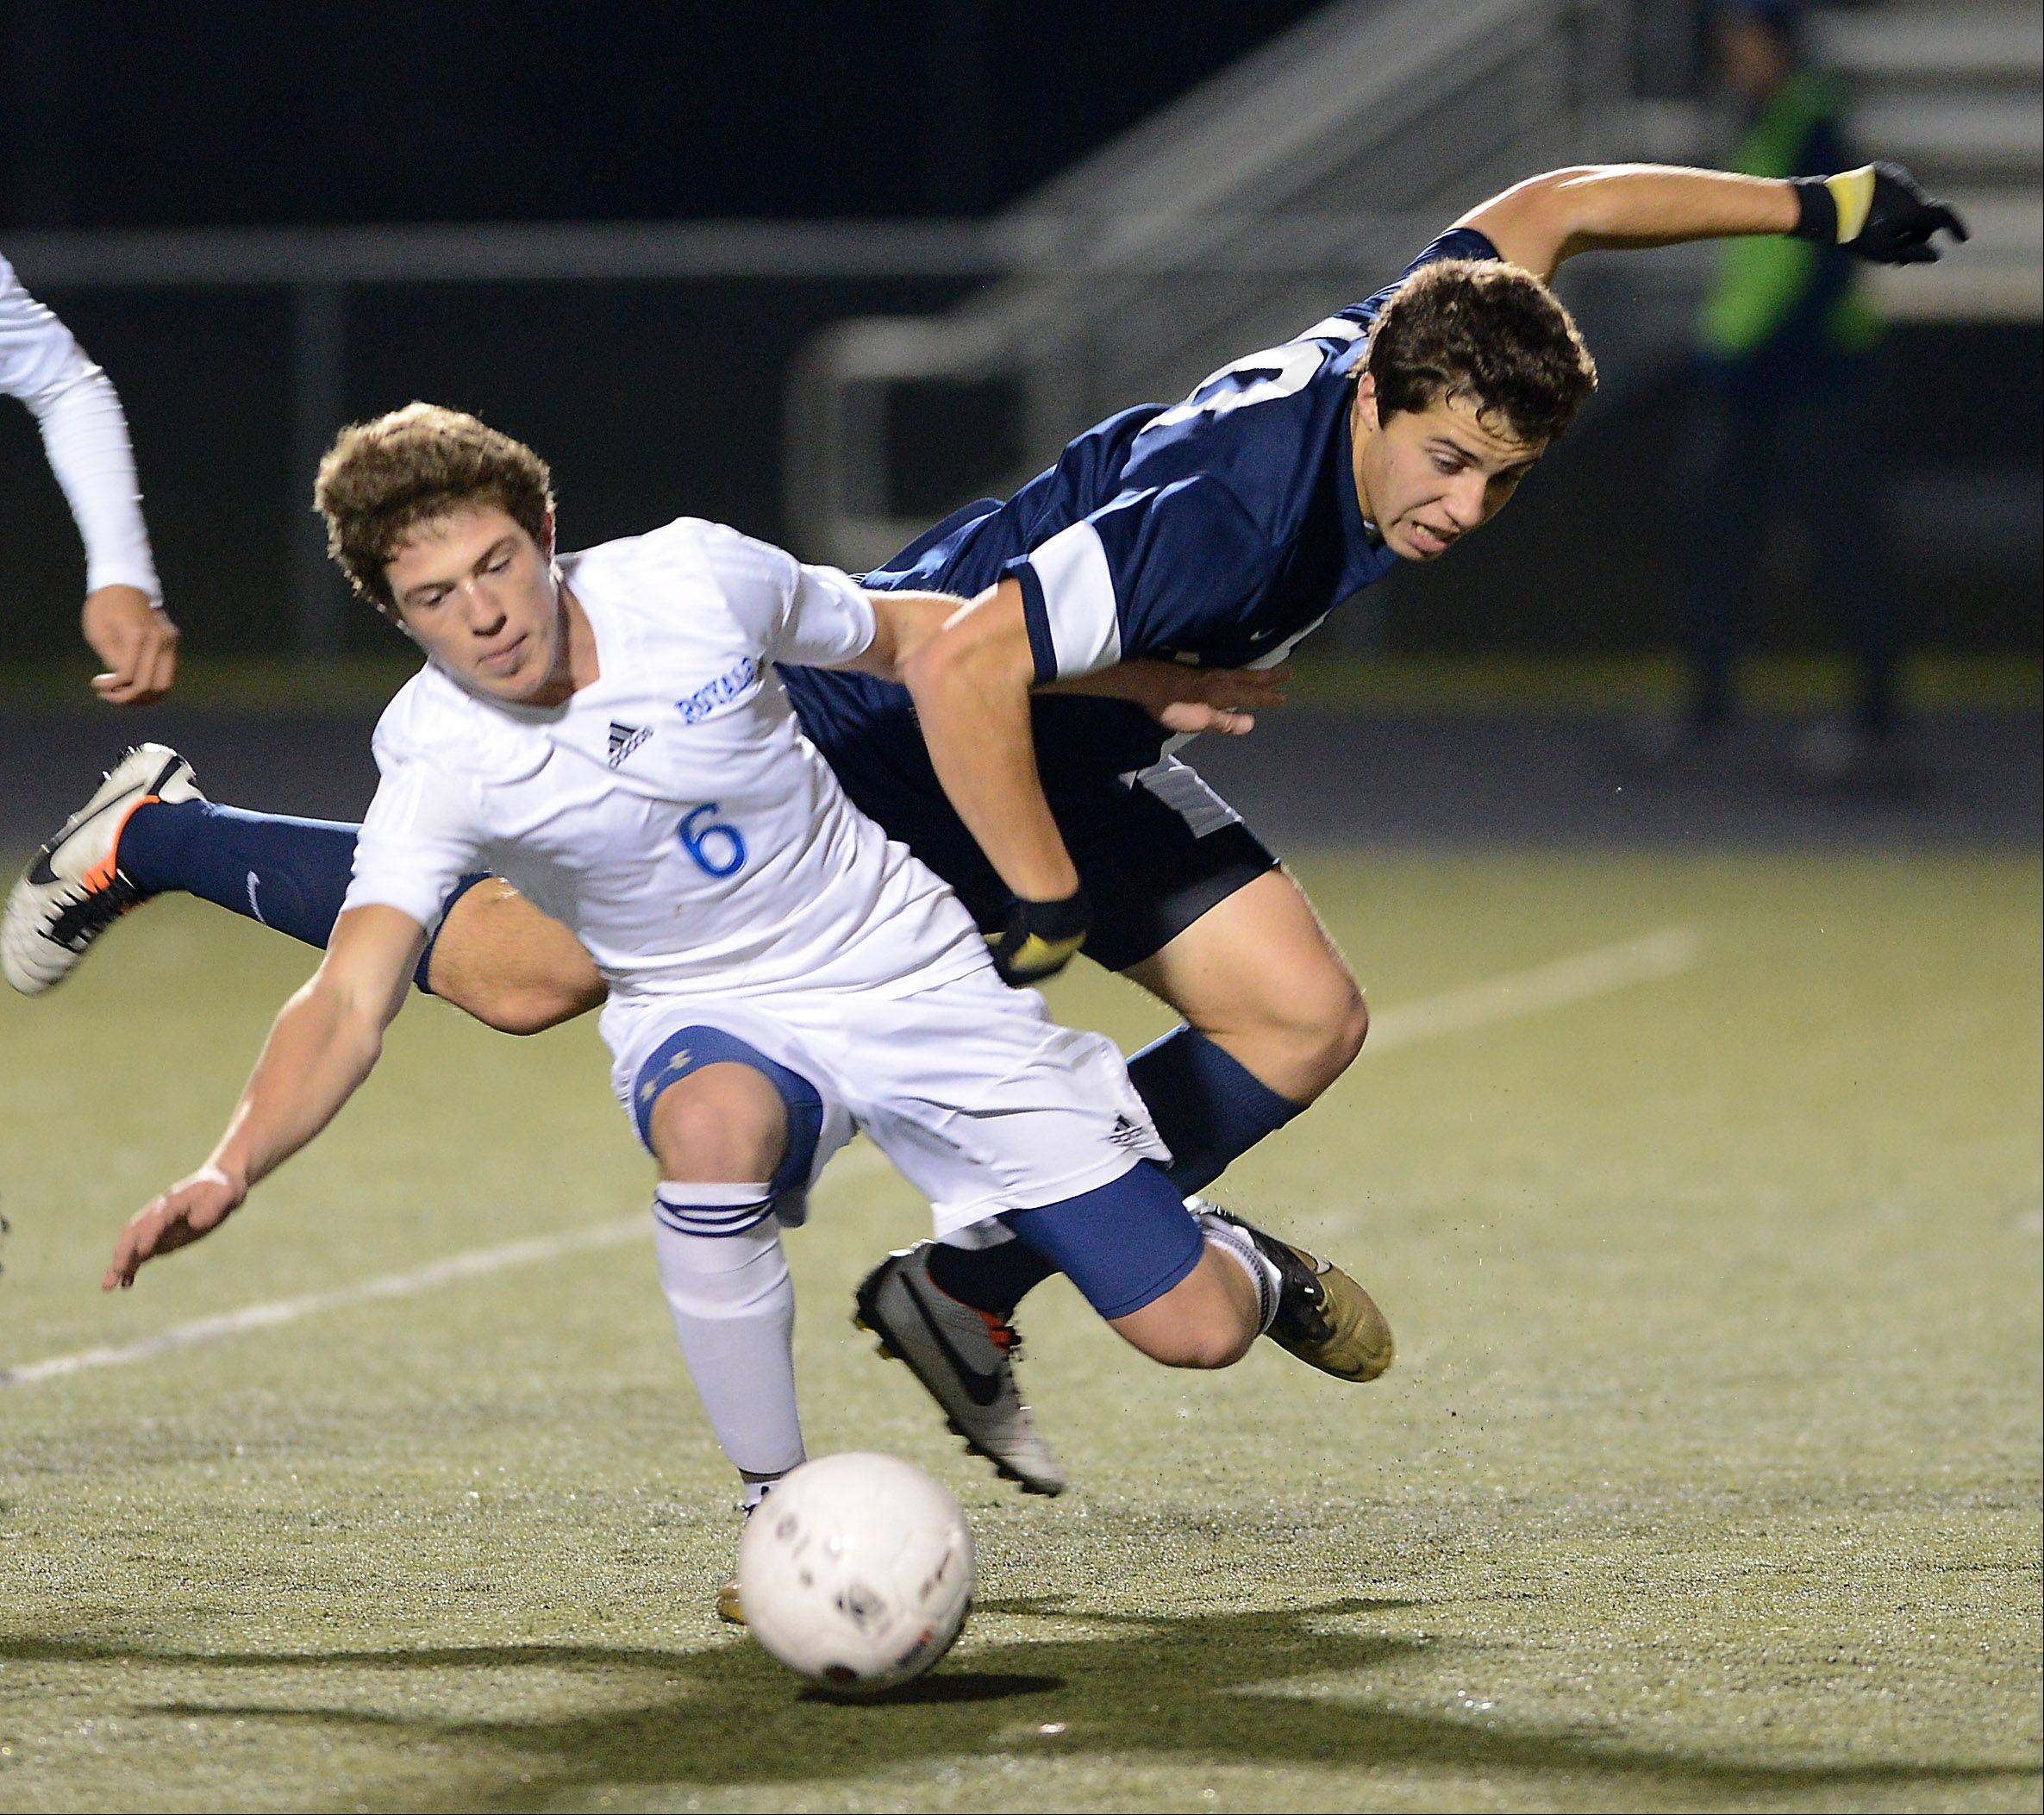 Larkin's Josh Garcia fouls Lake Park's Mike Catalano during Tuesday's supersectional in Streamwood. A rebound of Catalano's free kick was knocked in for the game-wining goal.